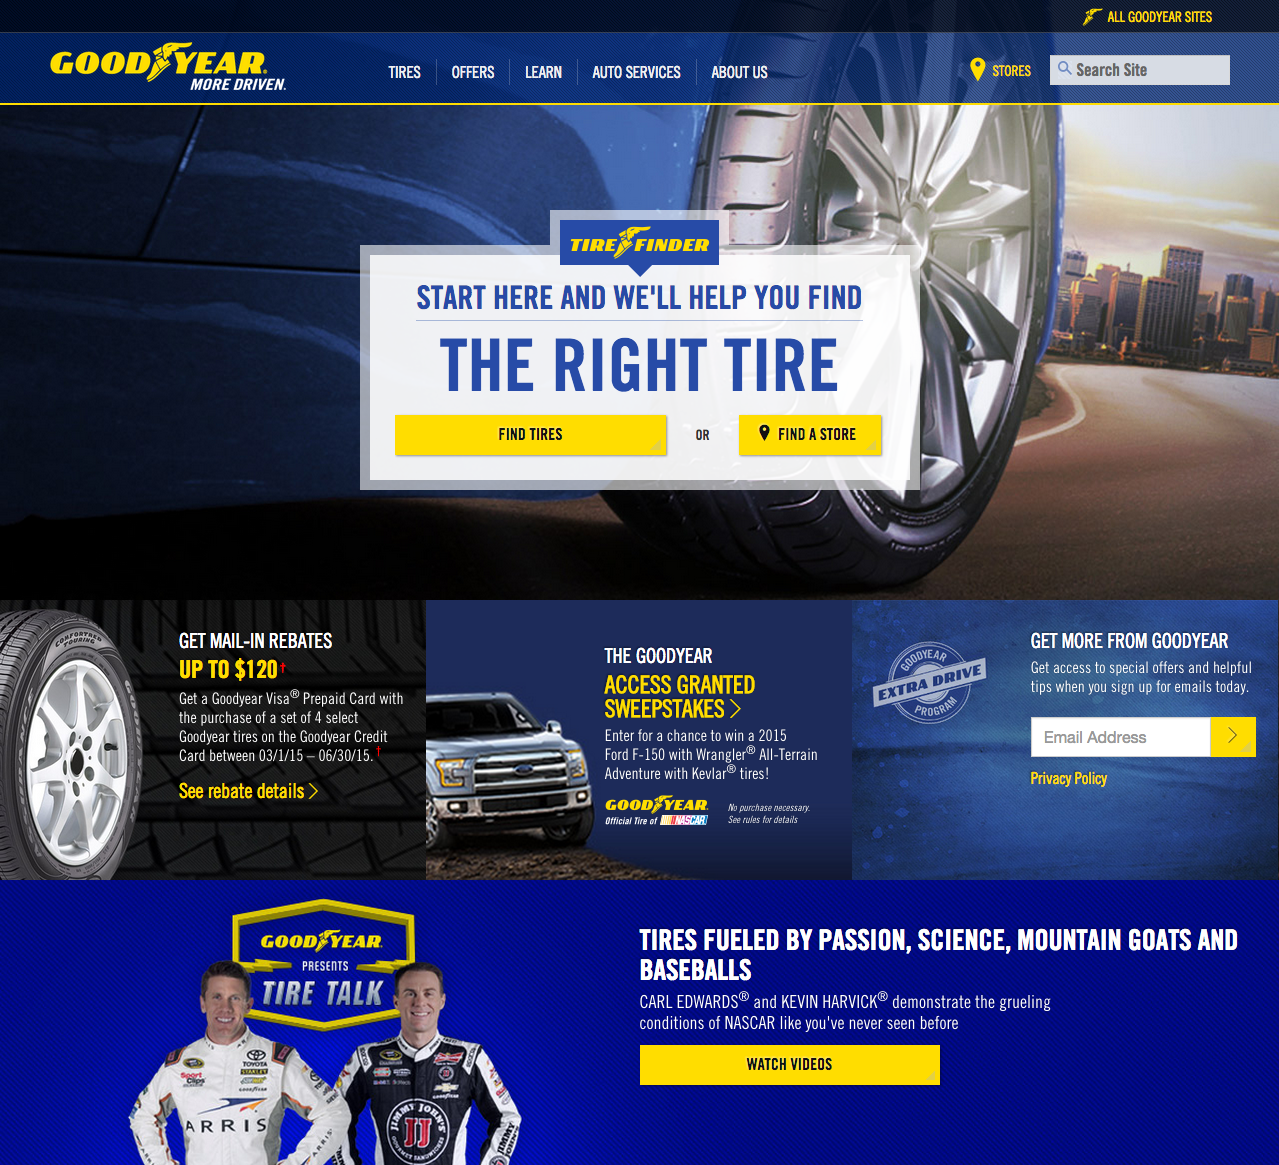 goodyear essay Executive summary: goodyear faces many issues with the launch of its aquatred brand, but the most complex decision pertains to its channel strategy based on the case analysis, goodyear should continue to utilize its traditional distribution channels f.